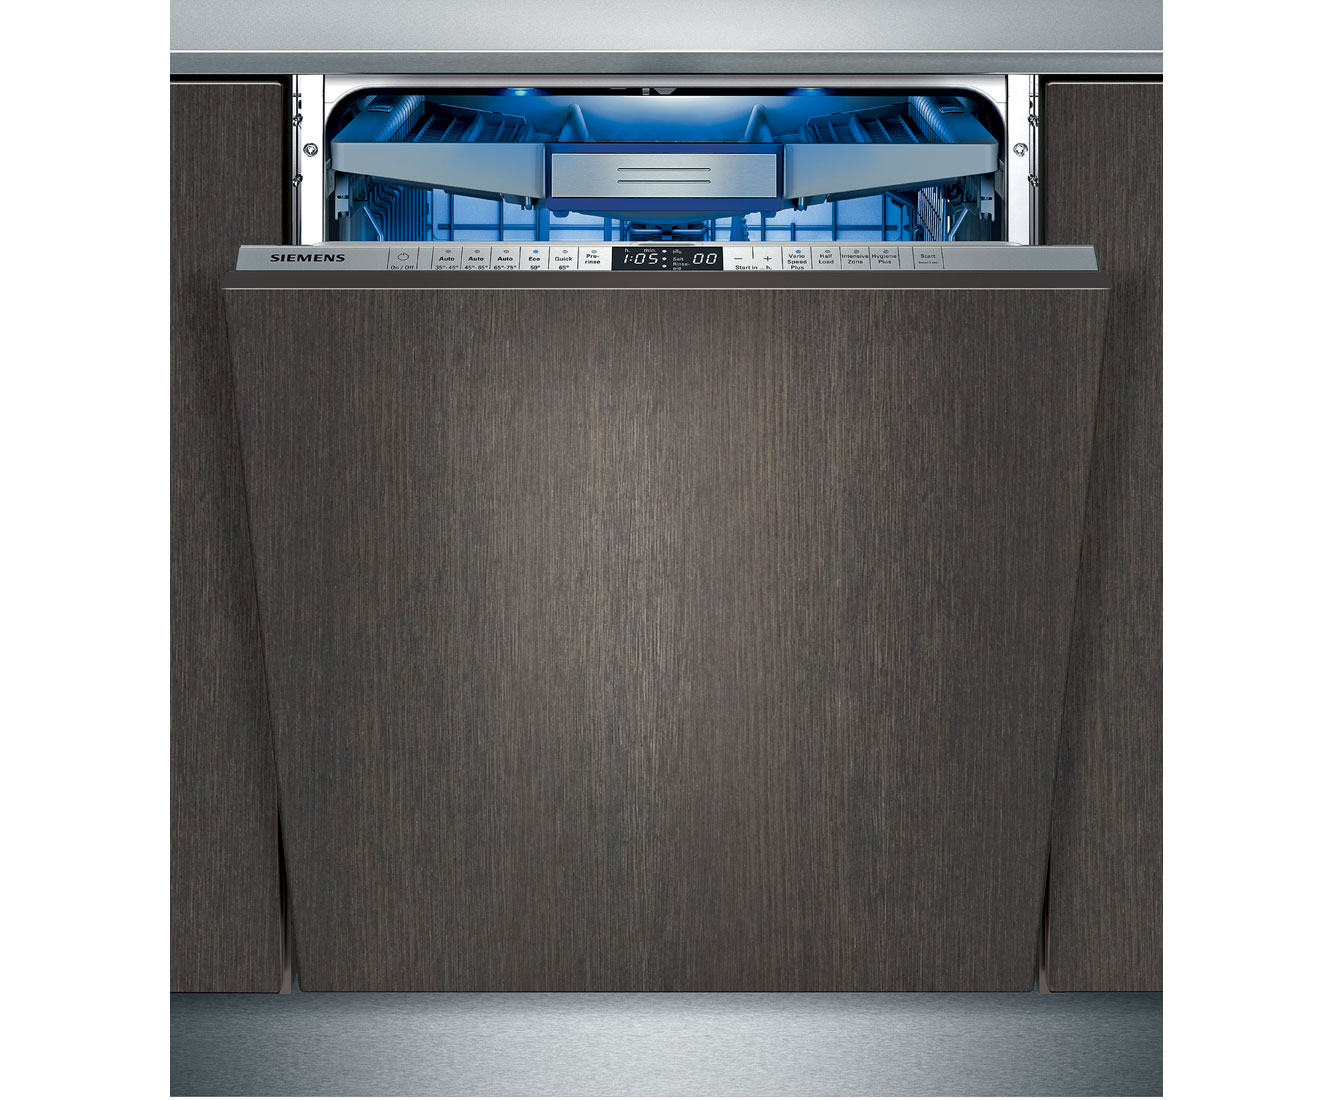 Siemens SN66T197GB Fully Integrated Standard Dishwasher - Stainless Steel